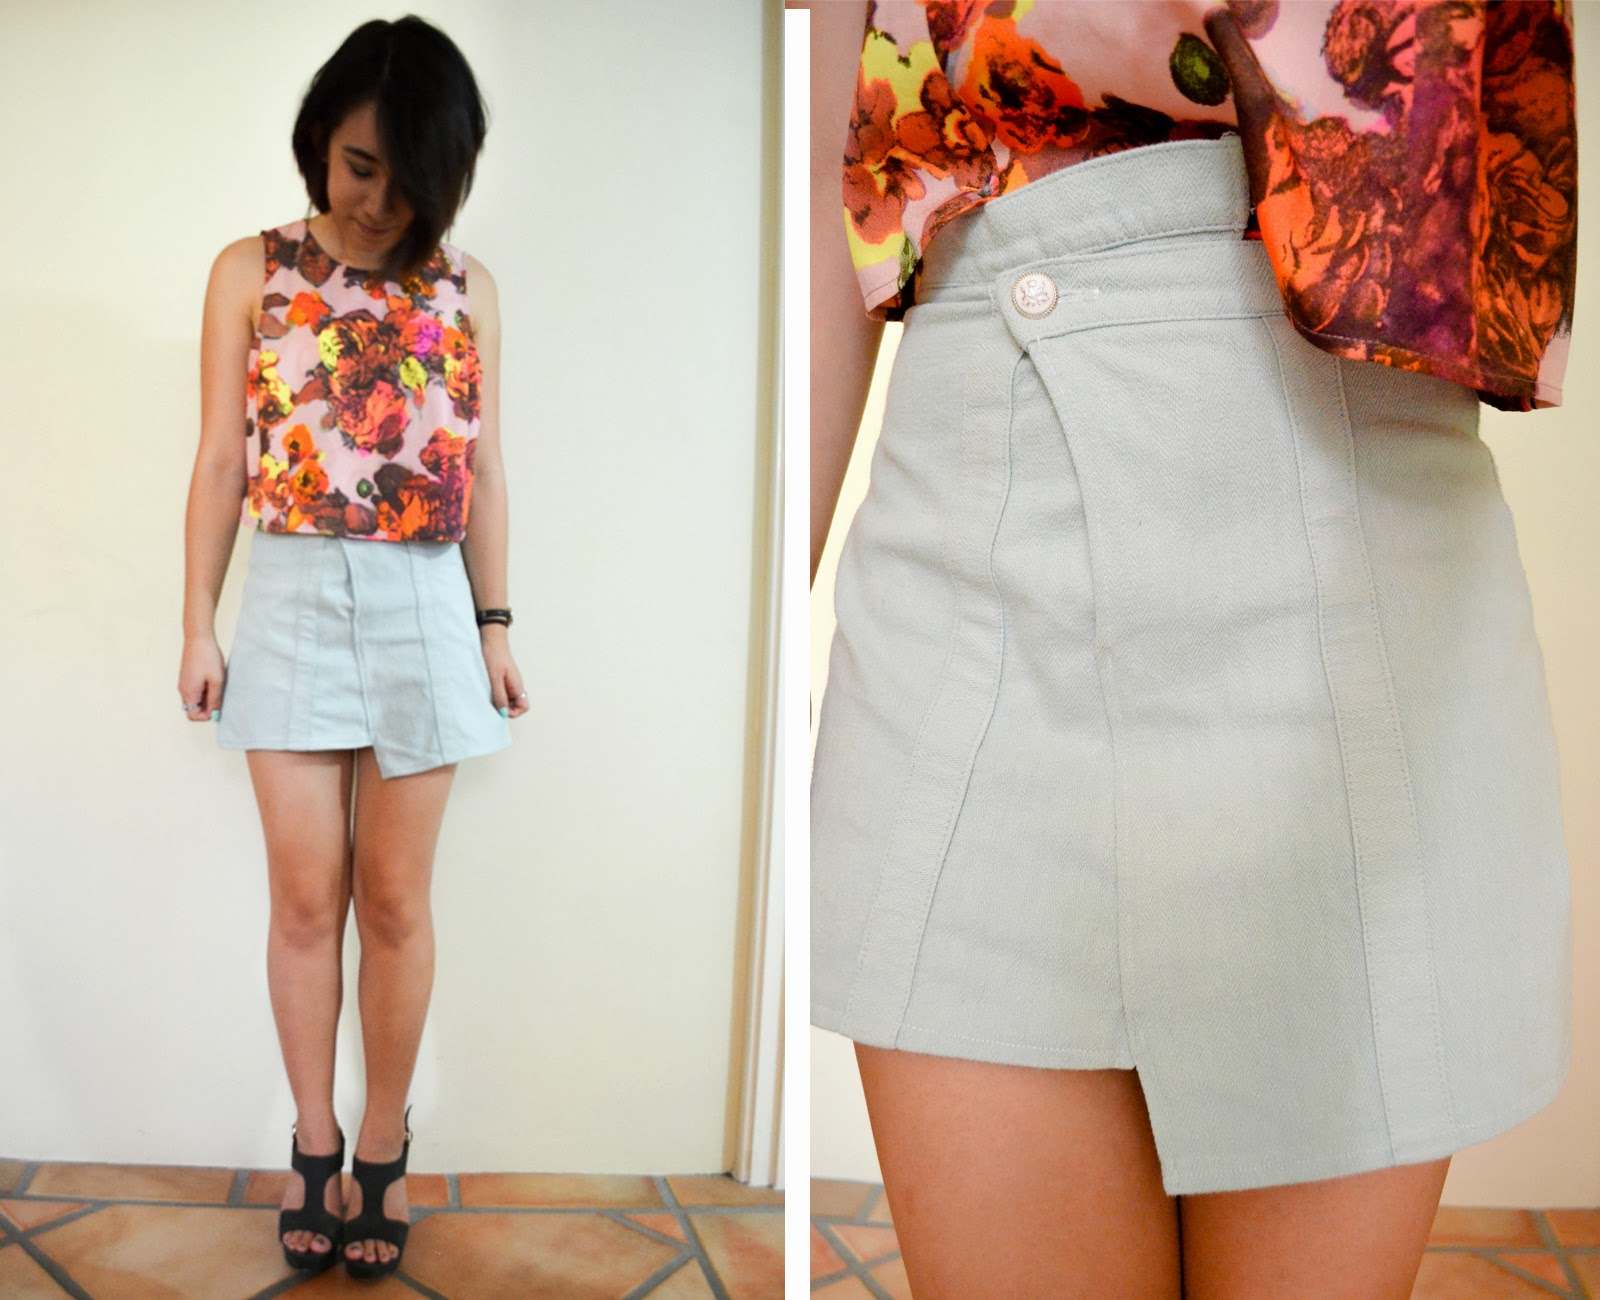 asymmetrical skirt diy blue thrifted top crop neon floral flowers heels outfit inspiration styling style